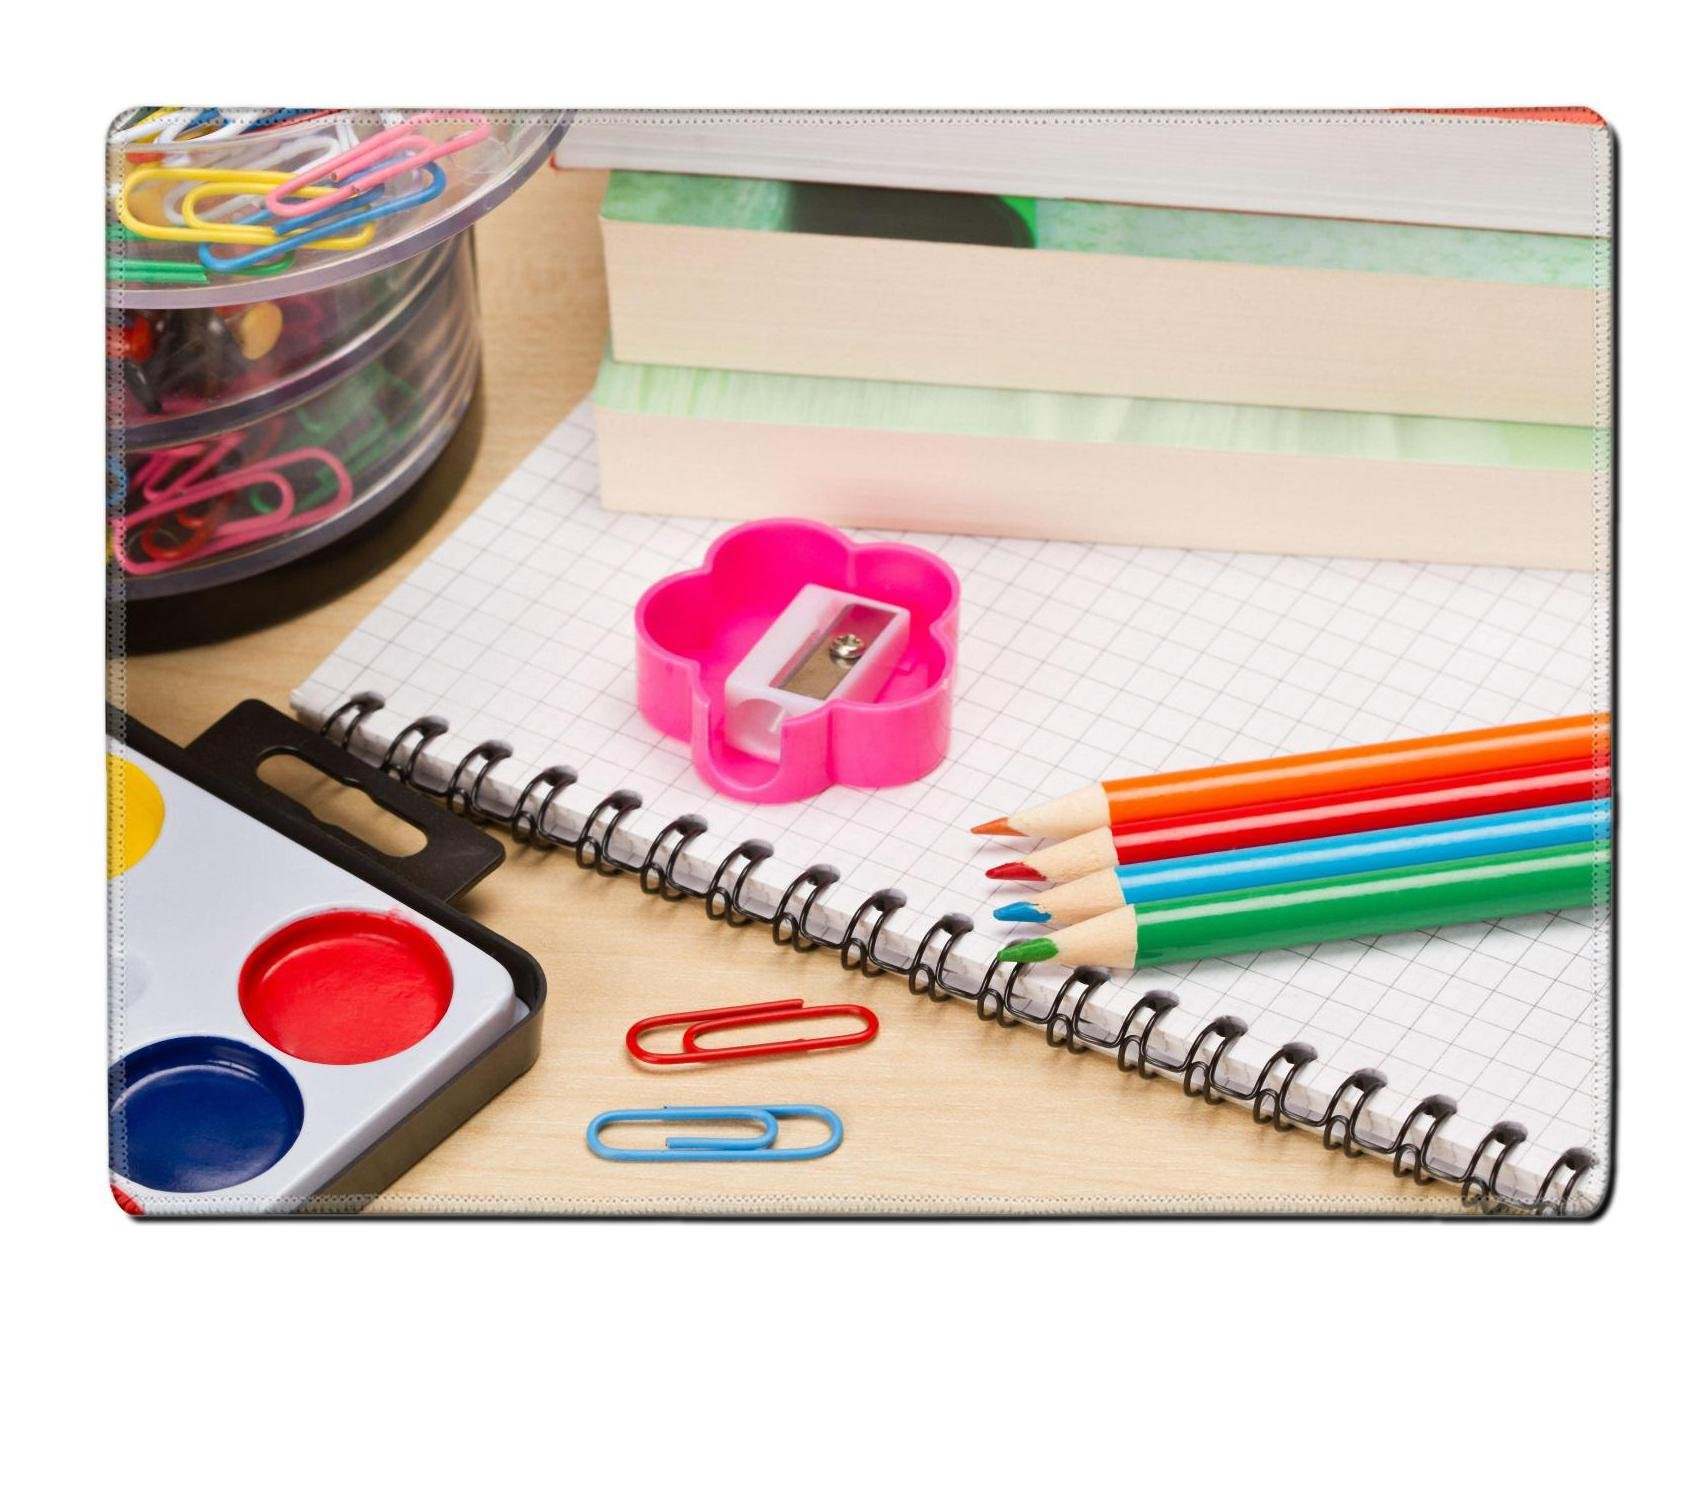 MSD Place Mat Non-Slip Natural Rubber Desk Pads Design: 30409051 School Supplies on Table by MSD (Image #1)